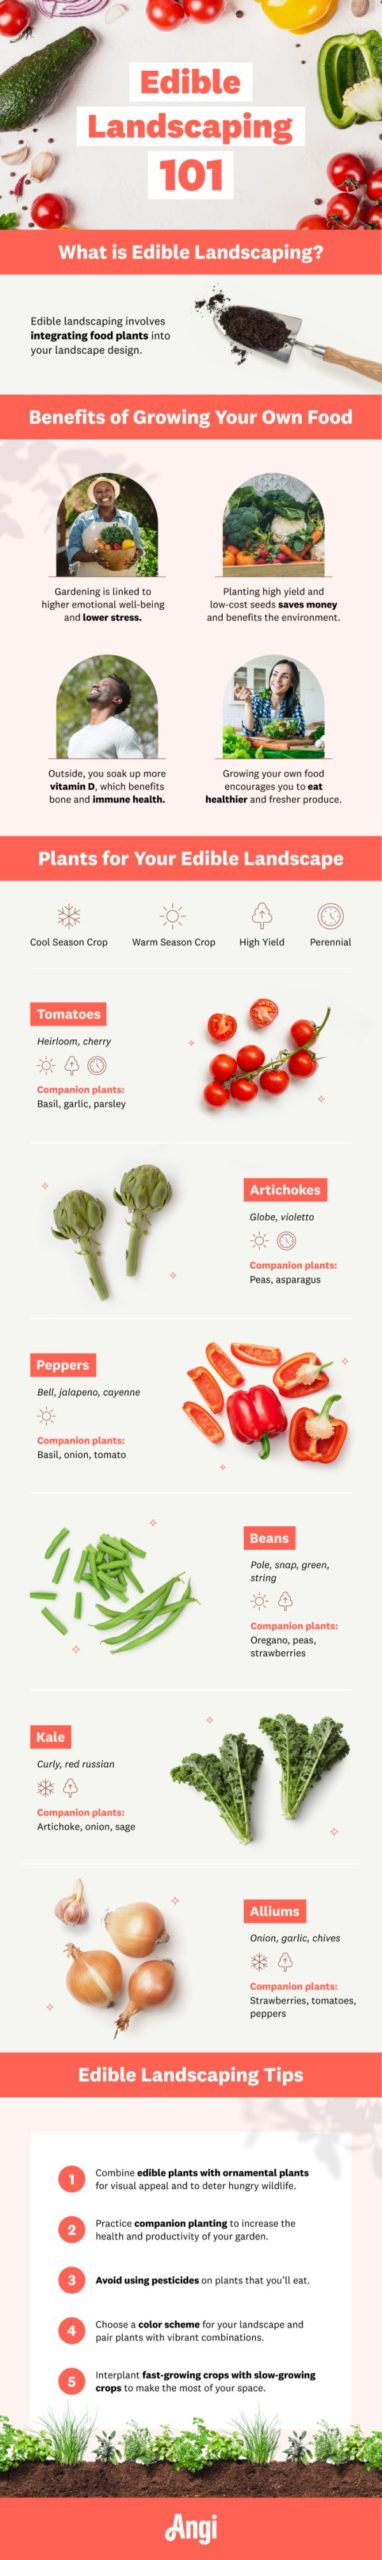 Edible Landscaping Infographic